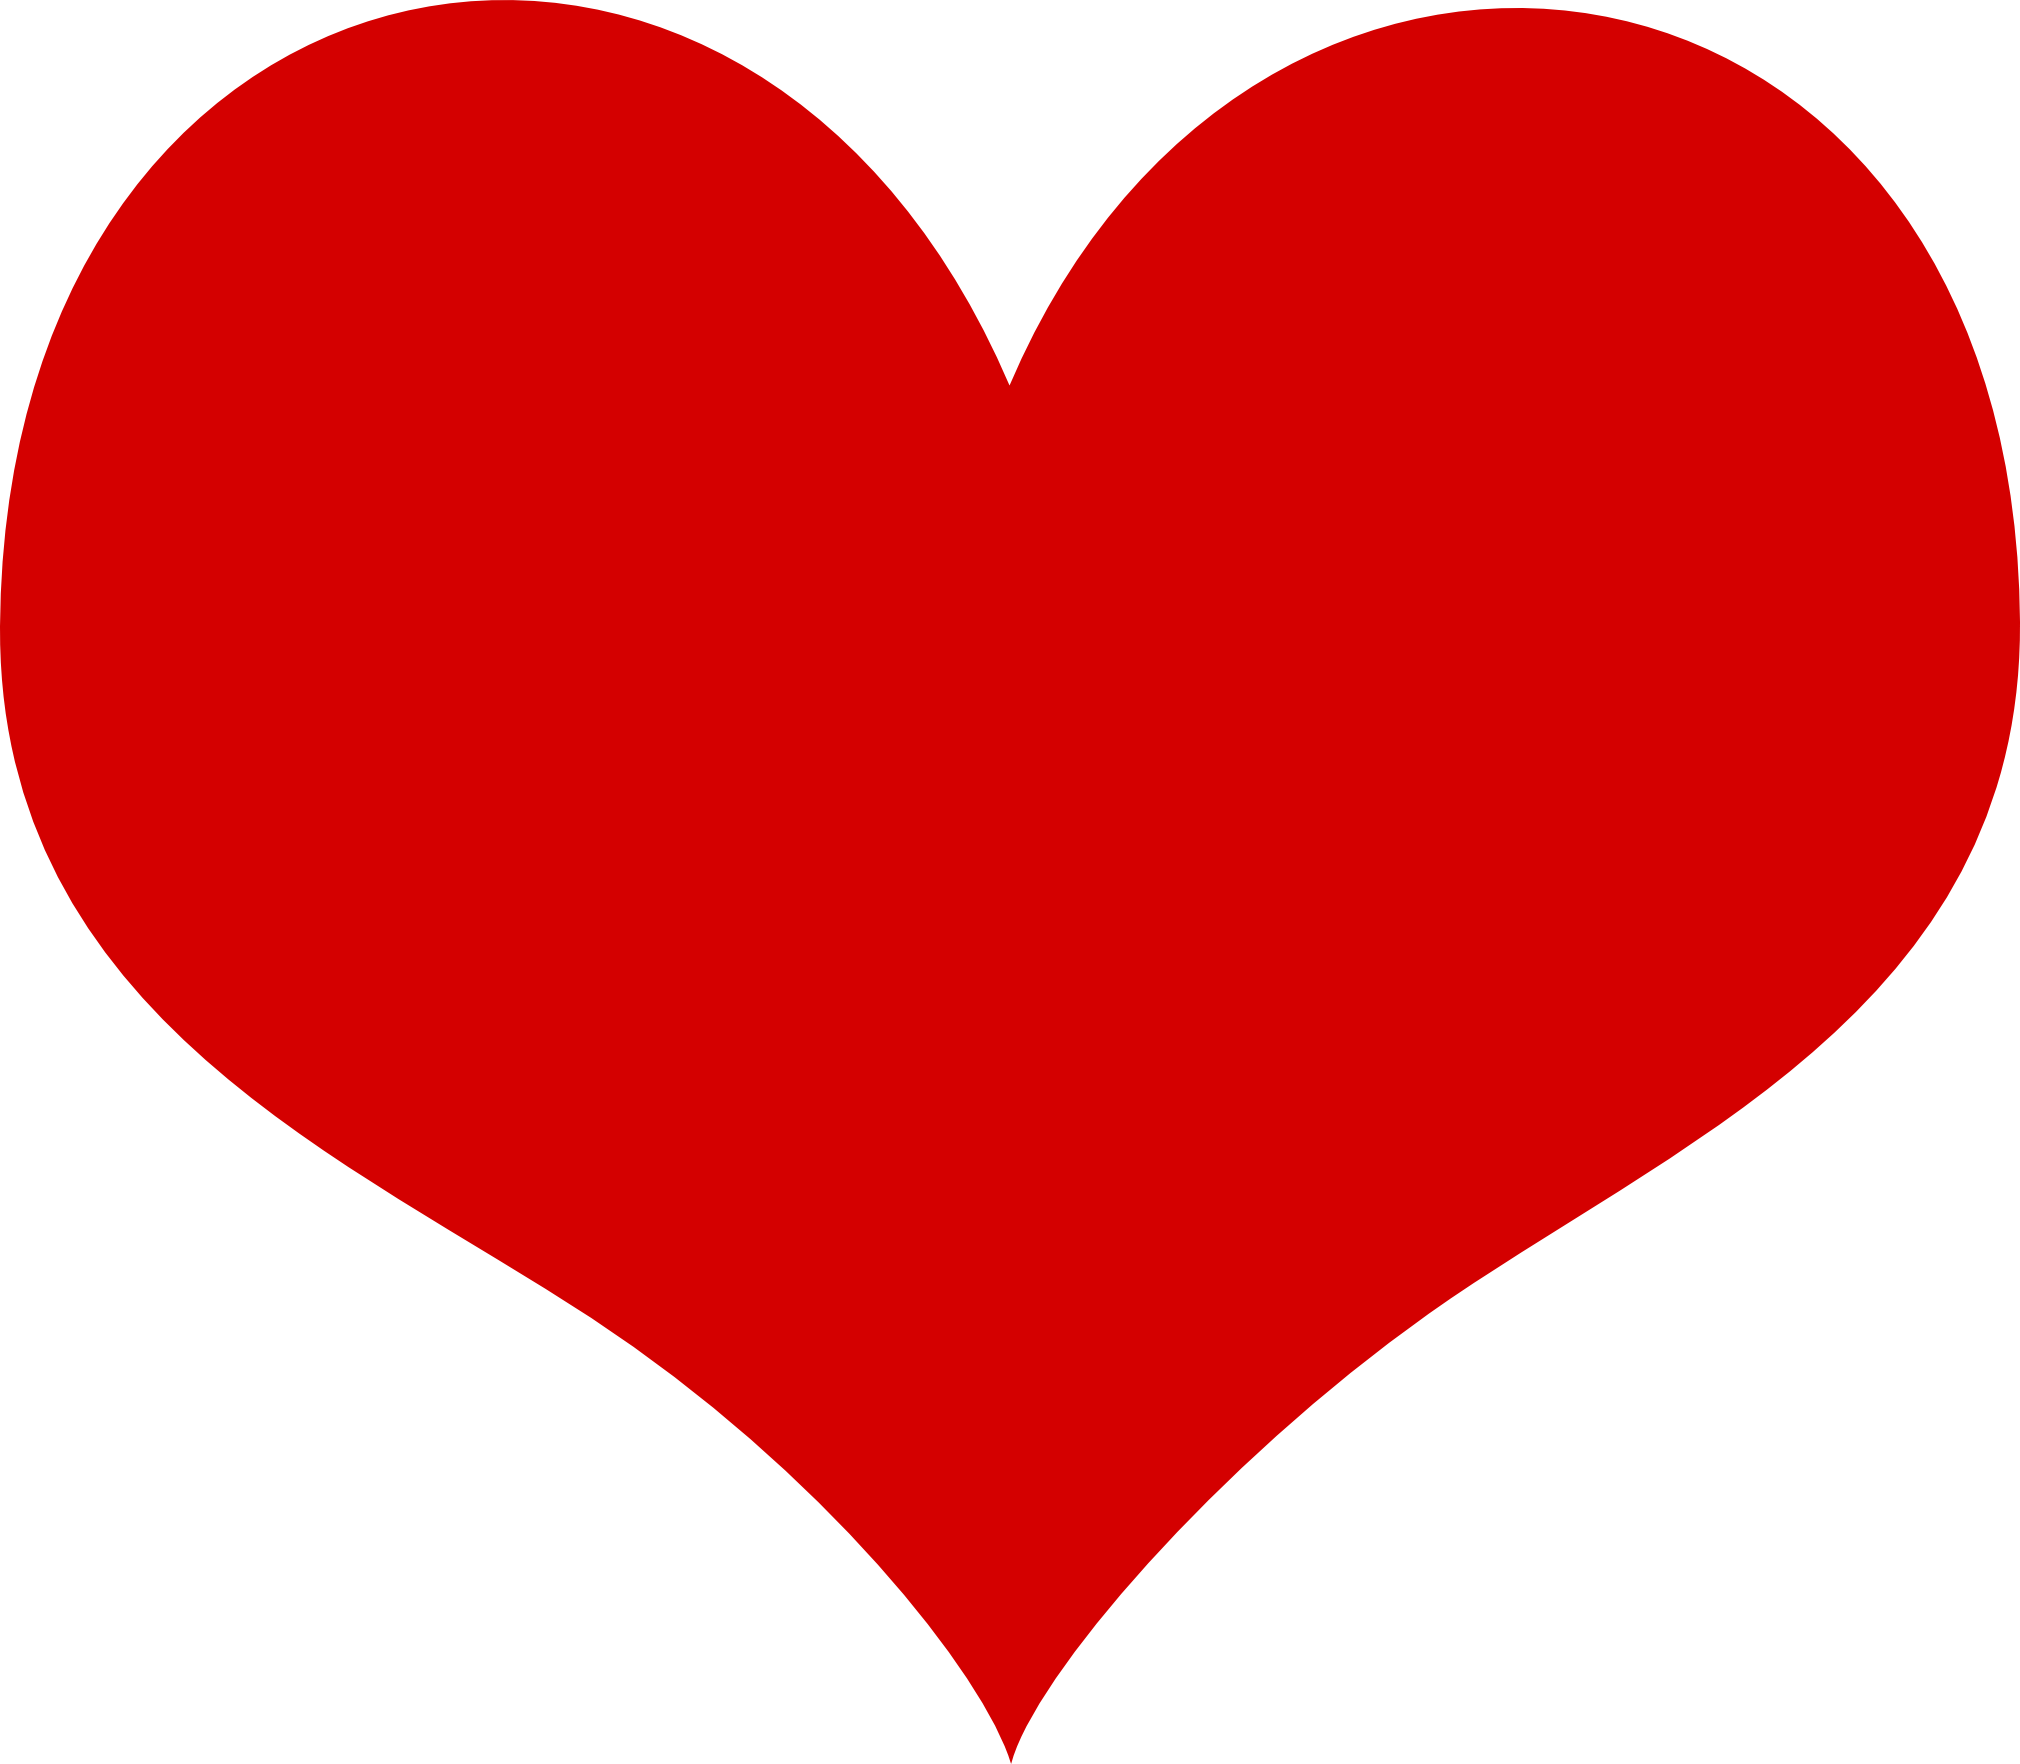 Valentines Heart Clipart.